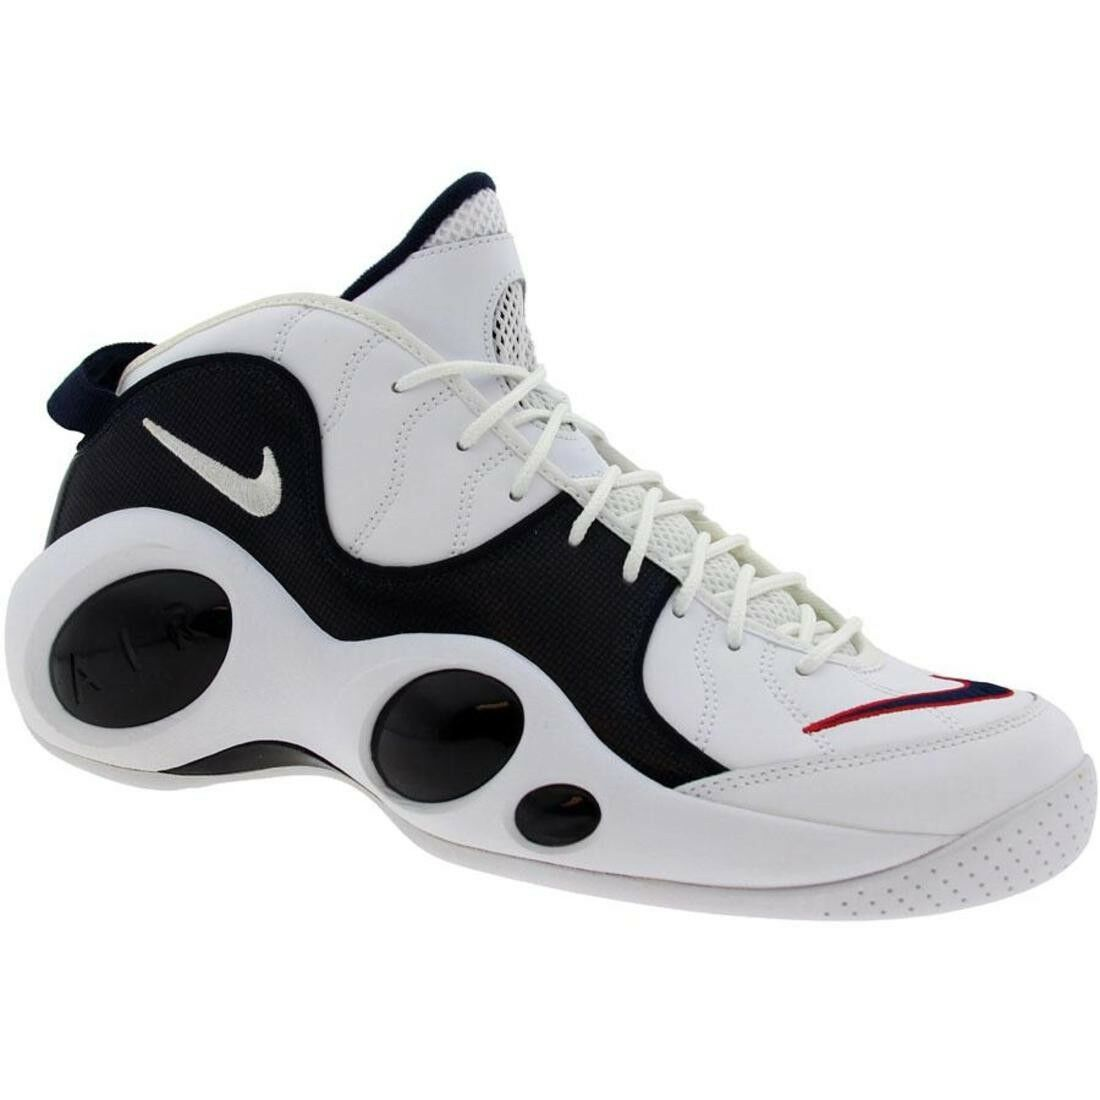 317810-141 Nike Nike Nike Air Flight 95 White Navy 317810-141 2008 1aa2b9